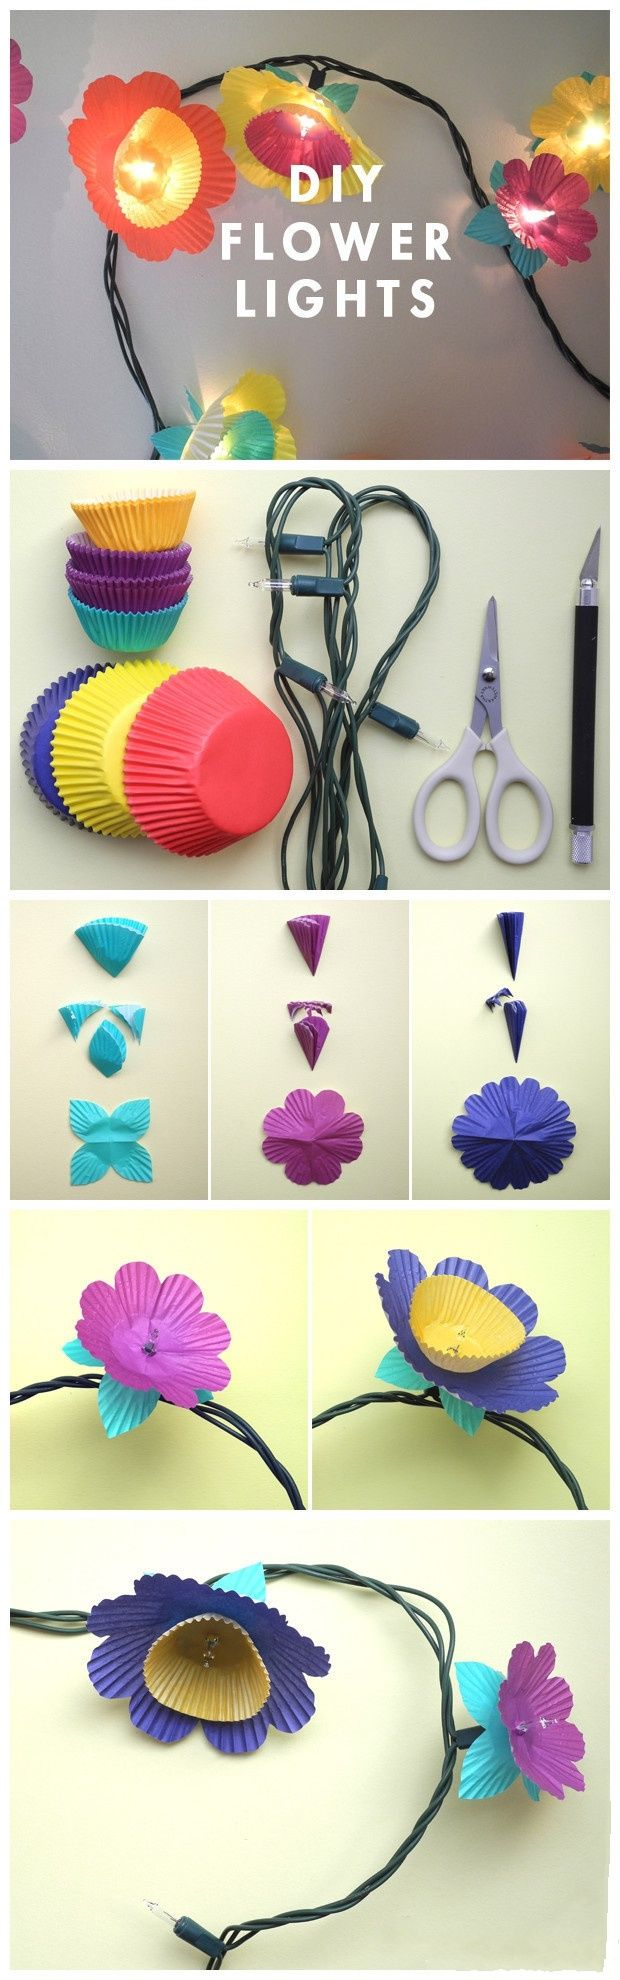 Surprise DIY Flower Lights, these would be so cute in my daughters rooms.                                                                                                                                                                                 Más